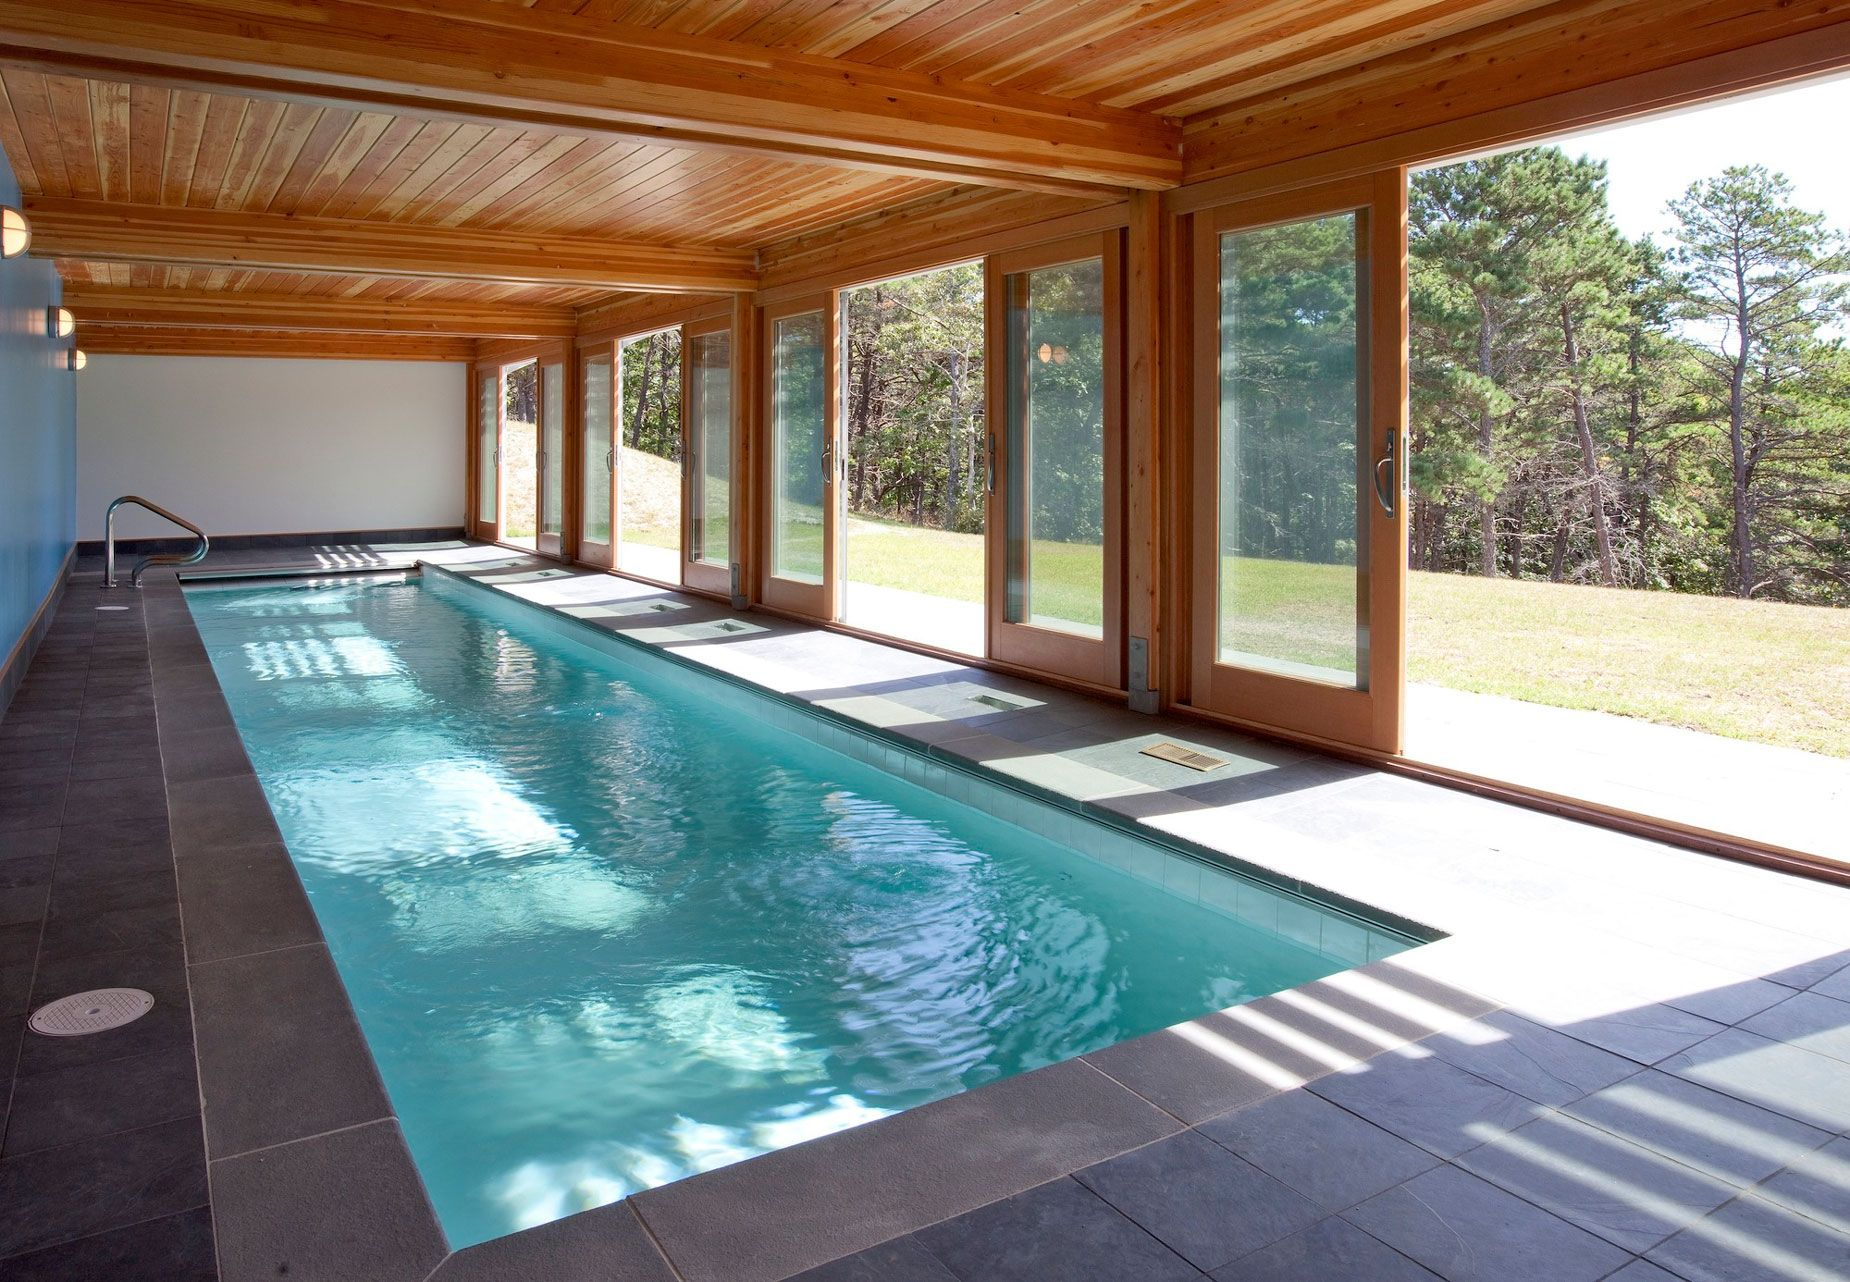 10 OF THE MOST AMAZING INDOOR SWIMMING POOLS | Indoor swimming ...